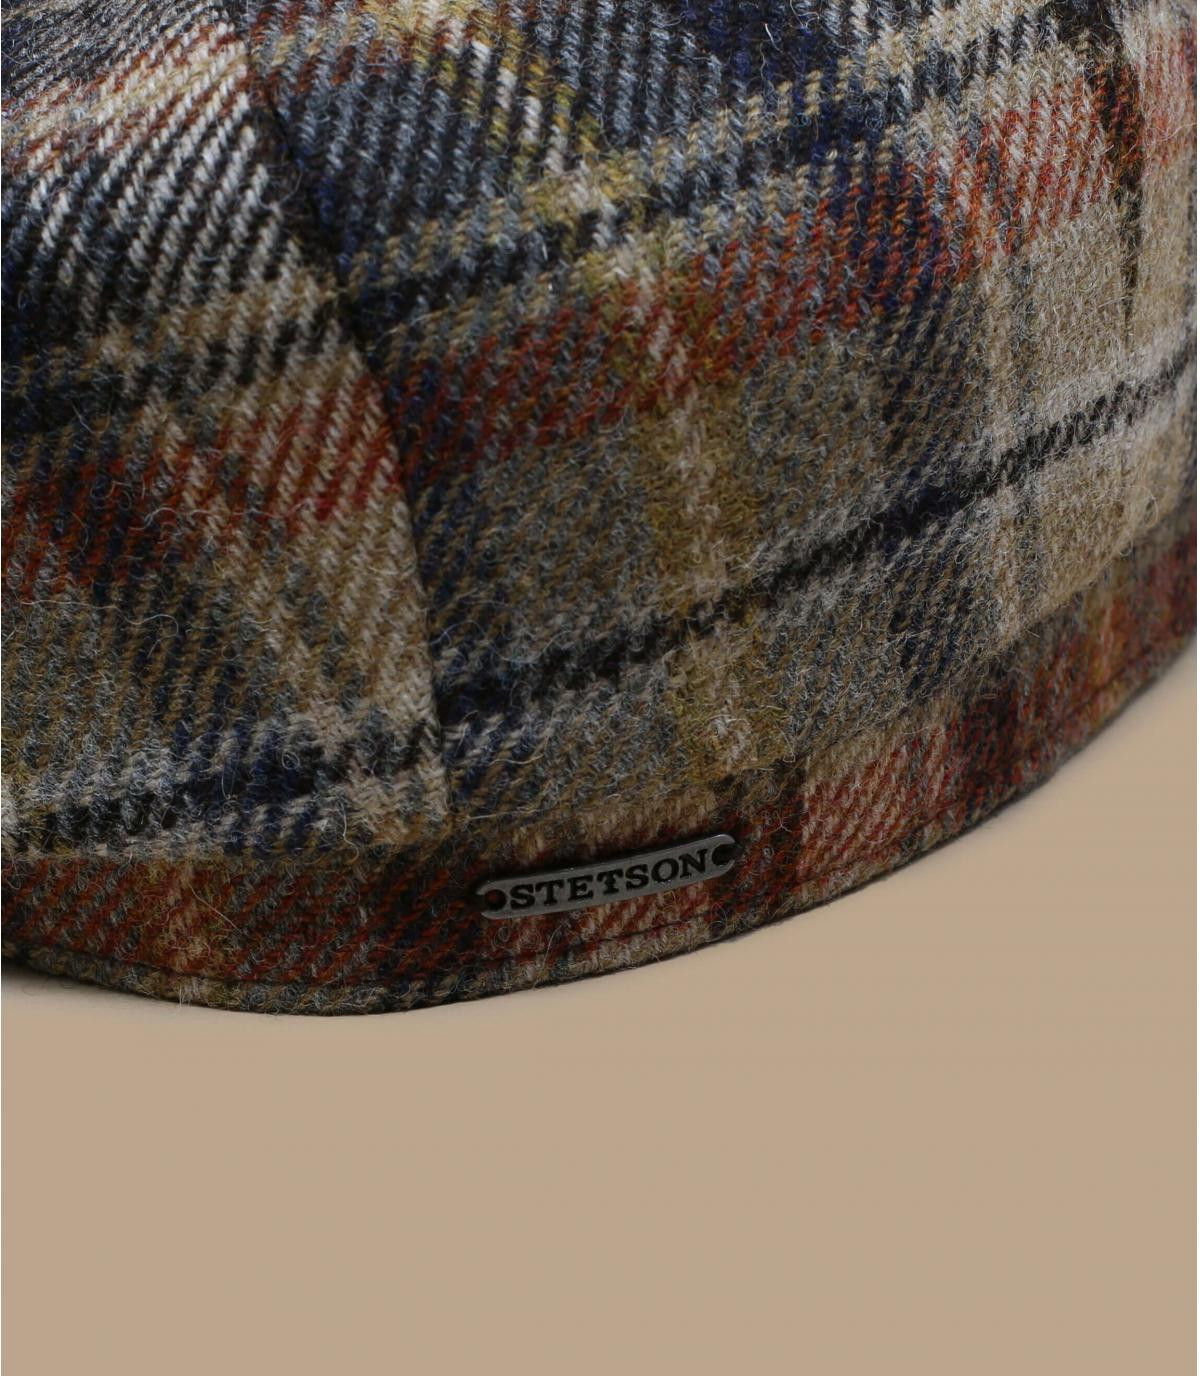 Détails Hatteras Wool Check brown beige - image 1